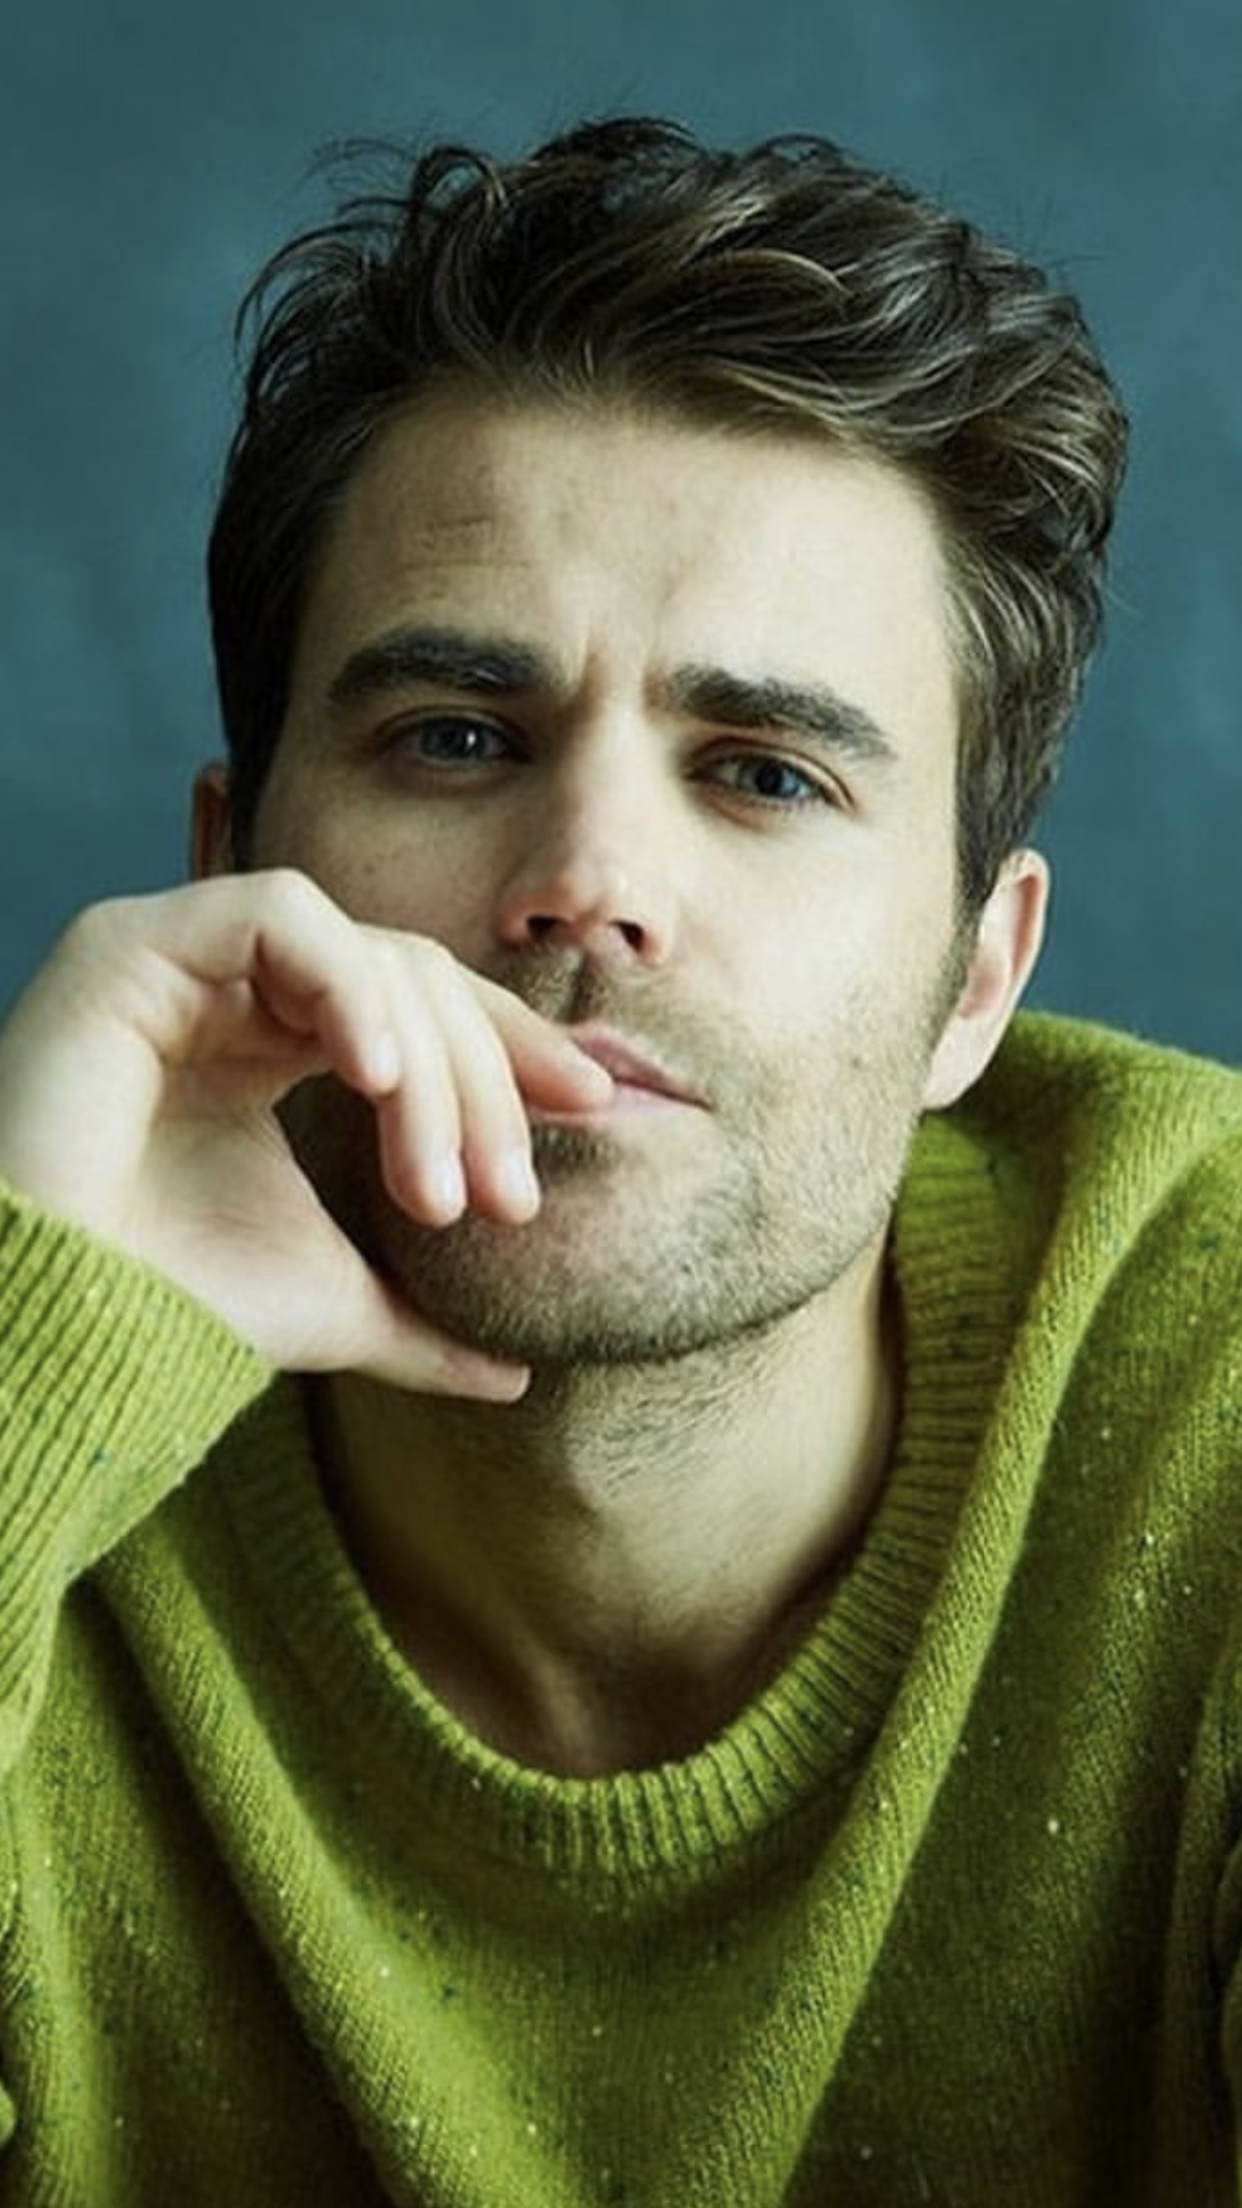 Paul wesley 2019 | So Hot!! in 2019 | Paul wesley, Vampire ...